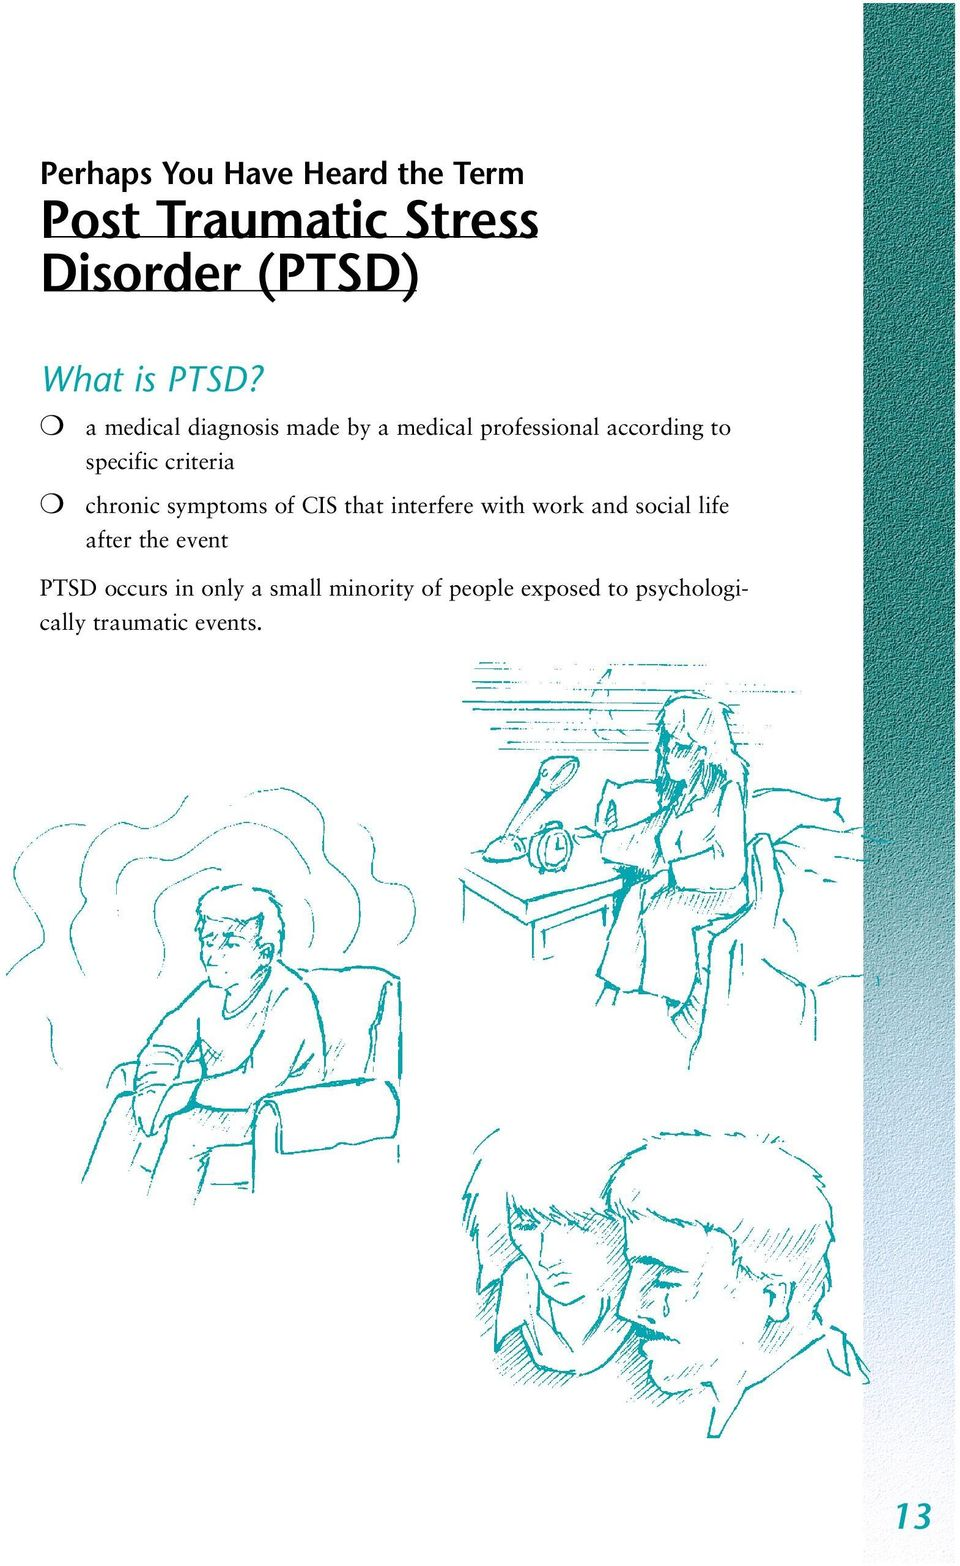 chronic symptoms of CIS that interfere with work and social life after the event PTSD